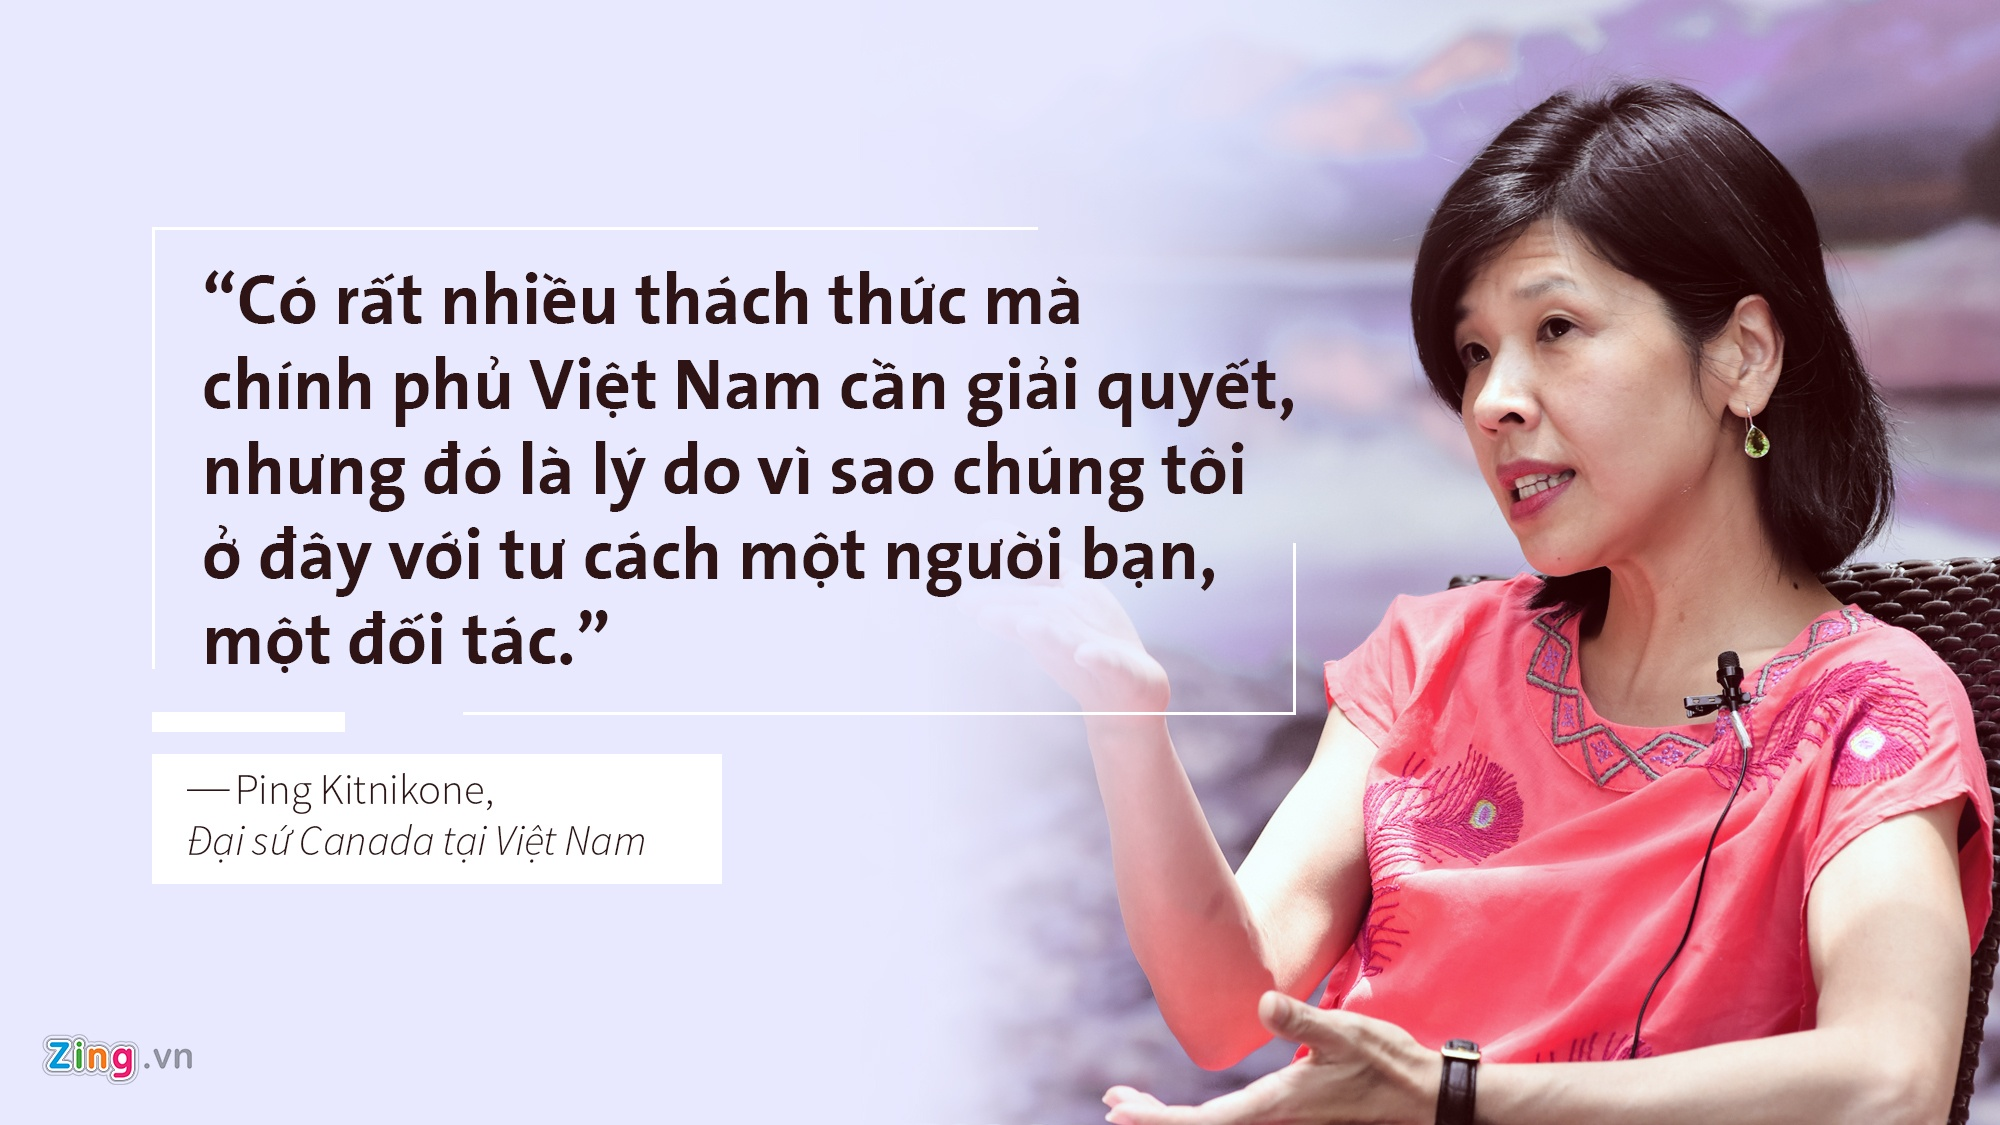 Canada muon thuc day hop tac quoc phong voi Viet Nam hinh anh 7